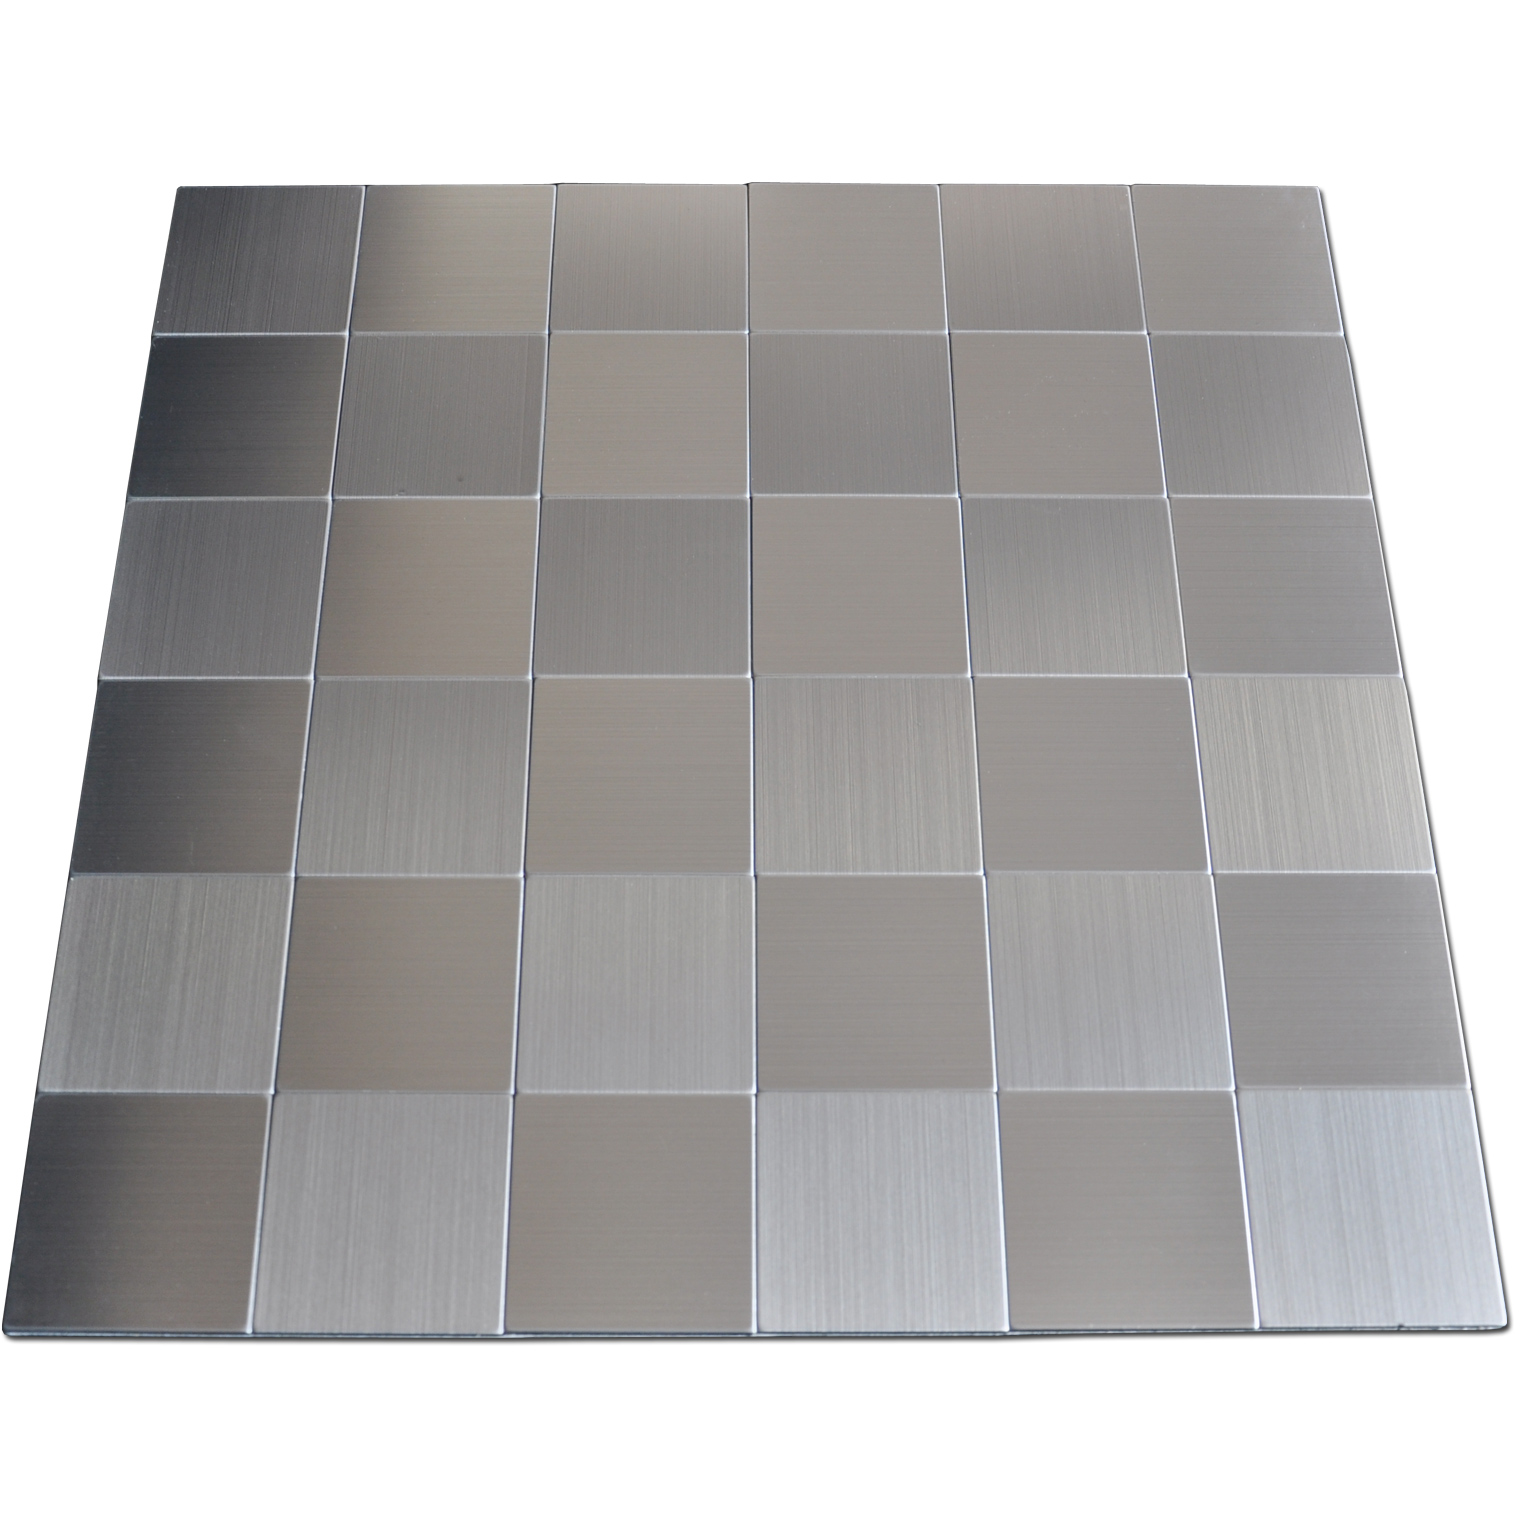 Self adhesive metal tiles 10 pcs stainless peel n stick for Stainless steel backsplash tiles self adhesive